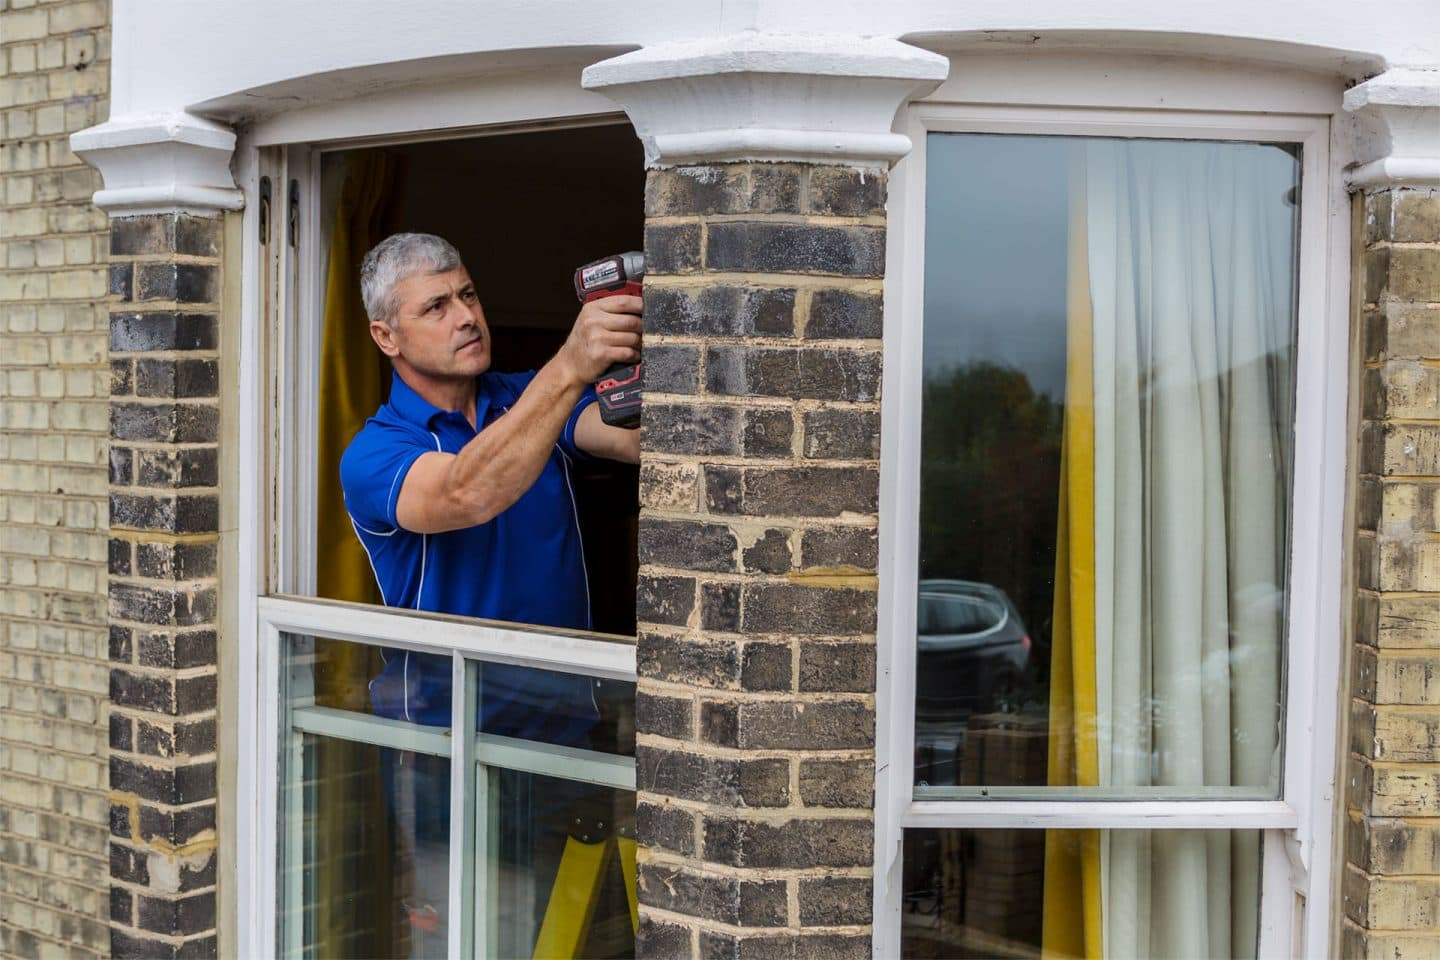 Window repair service in London